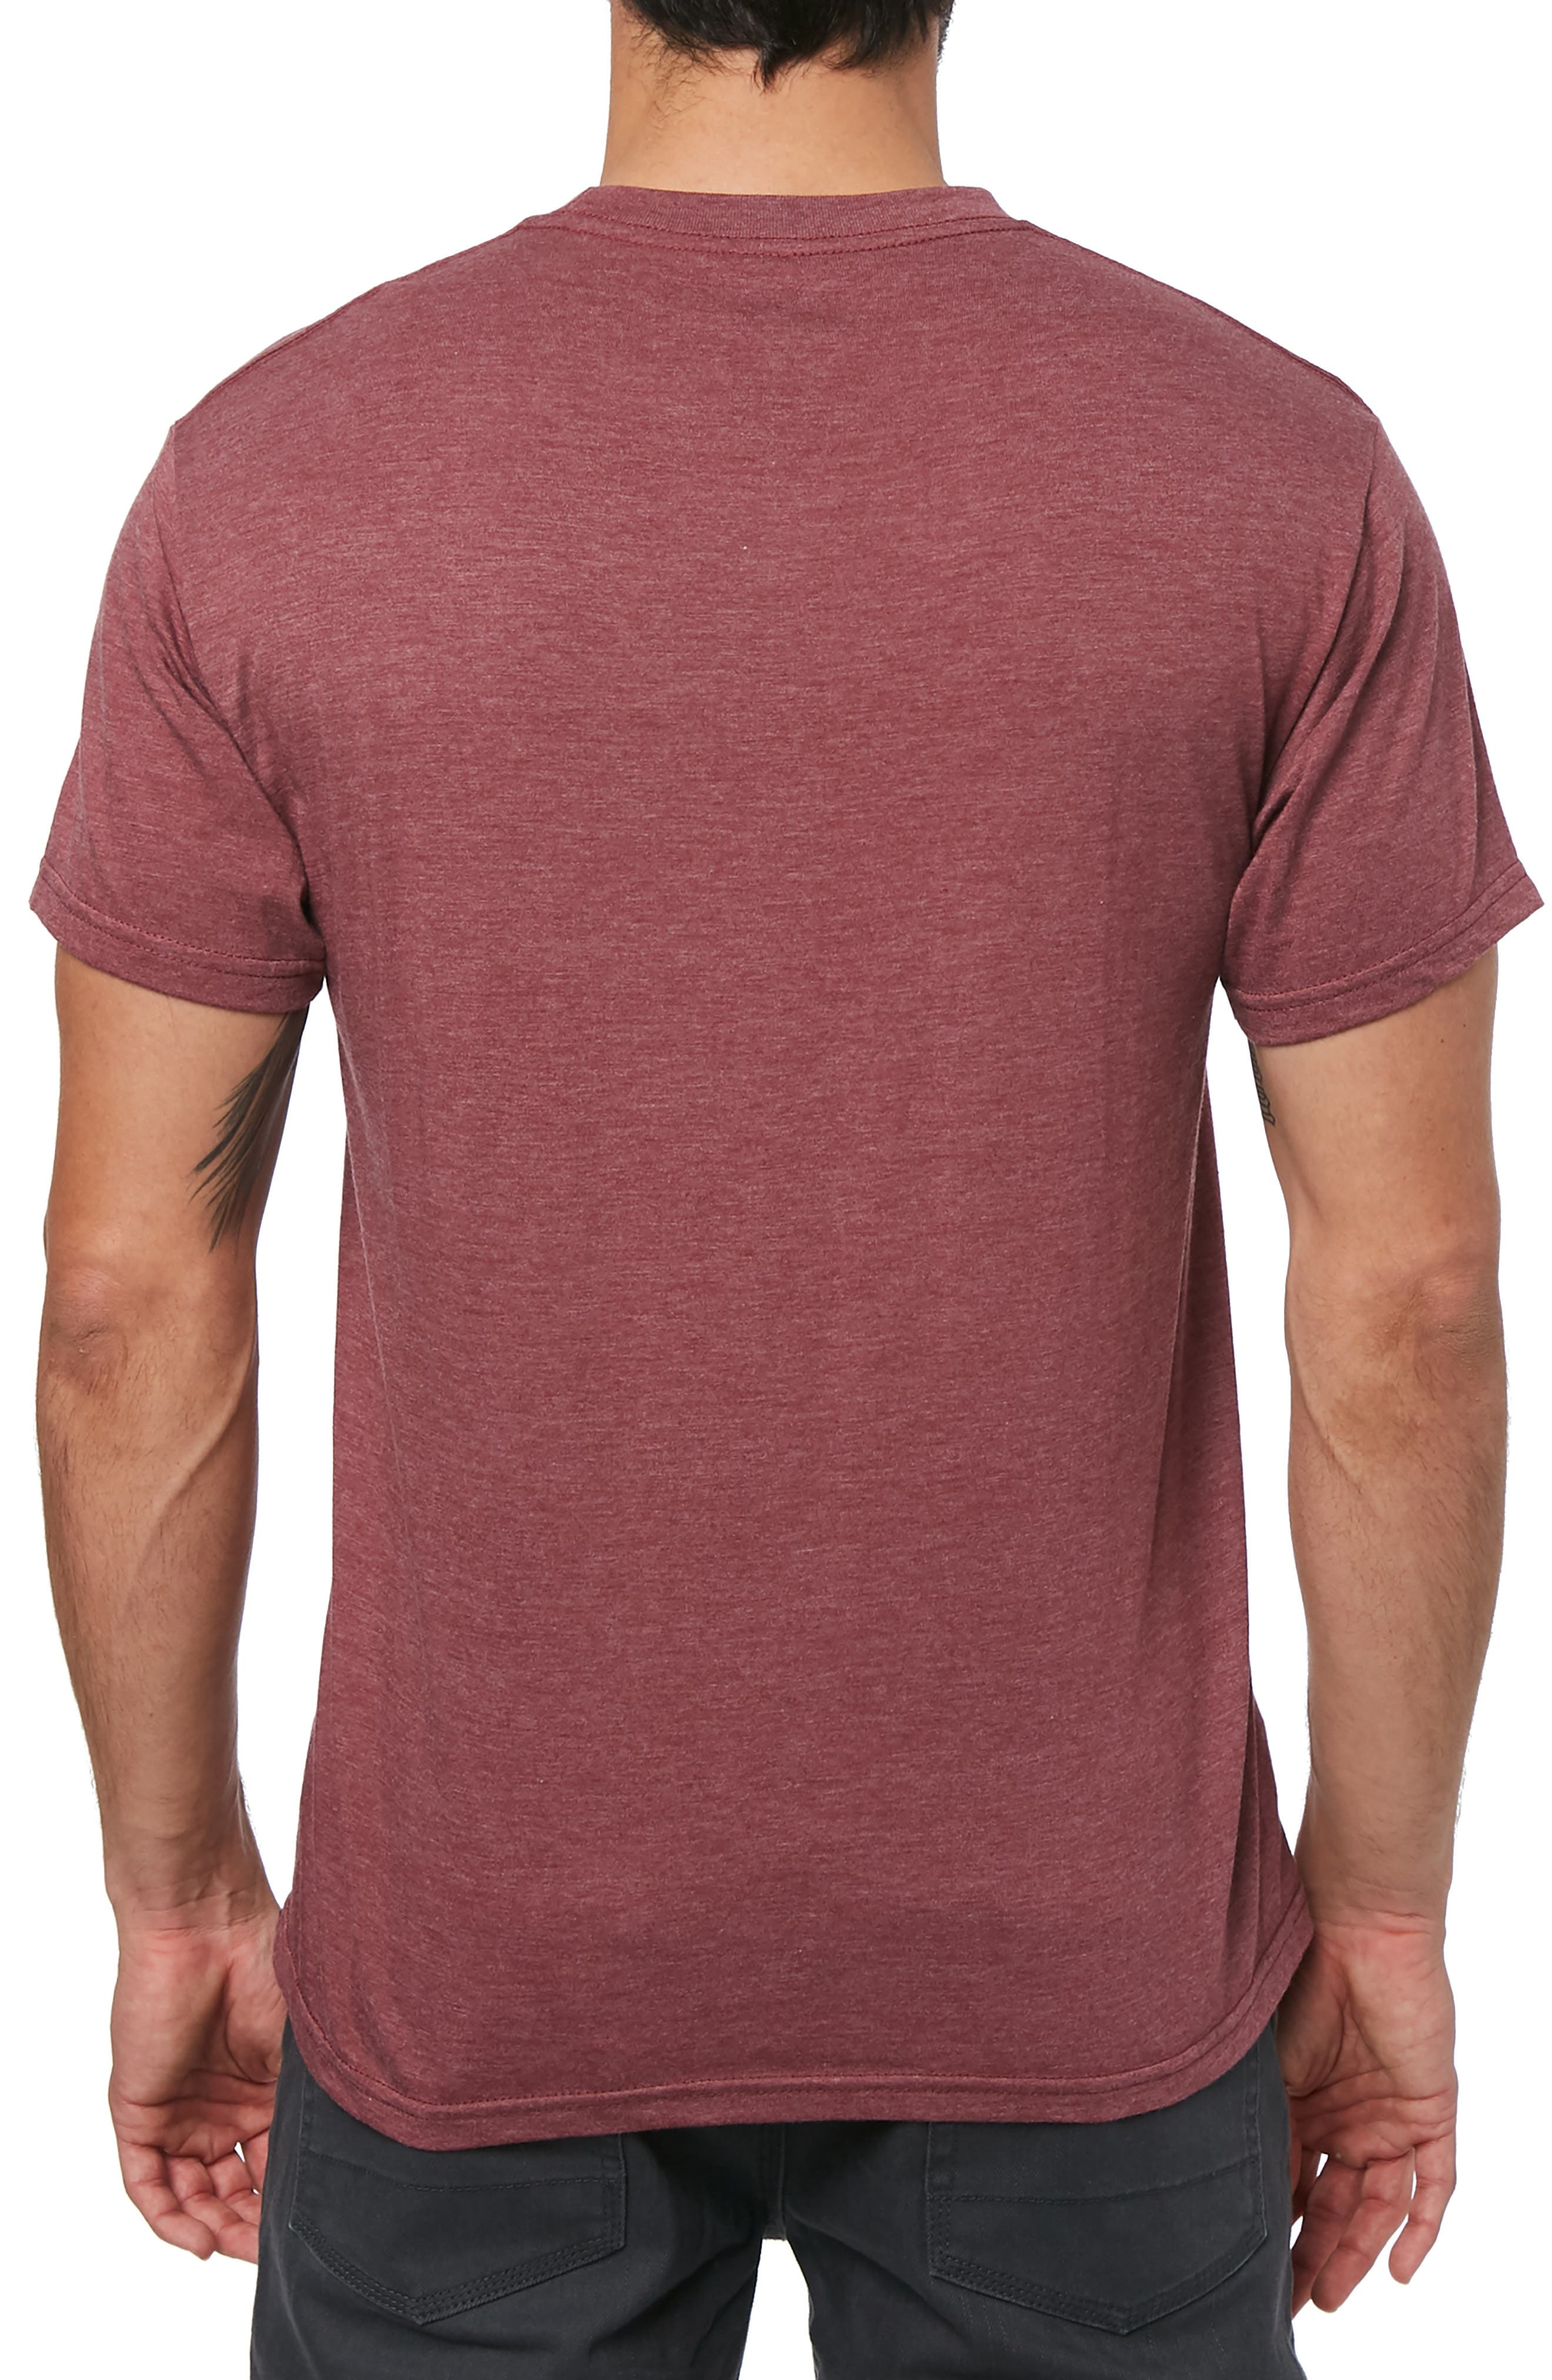 O'NEILL,                             Ink Blast Graphic T-Shirt,                             Alternate thumbnail 2, color,                             930